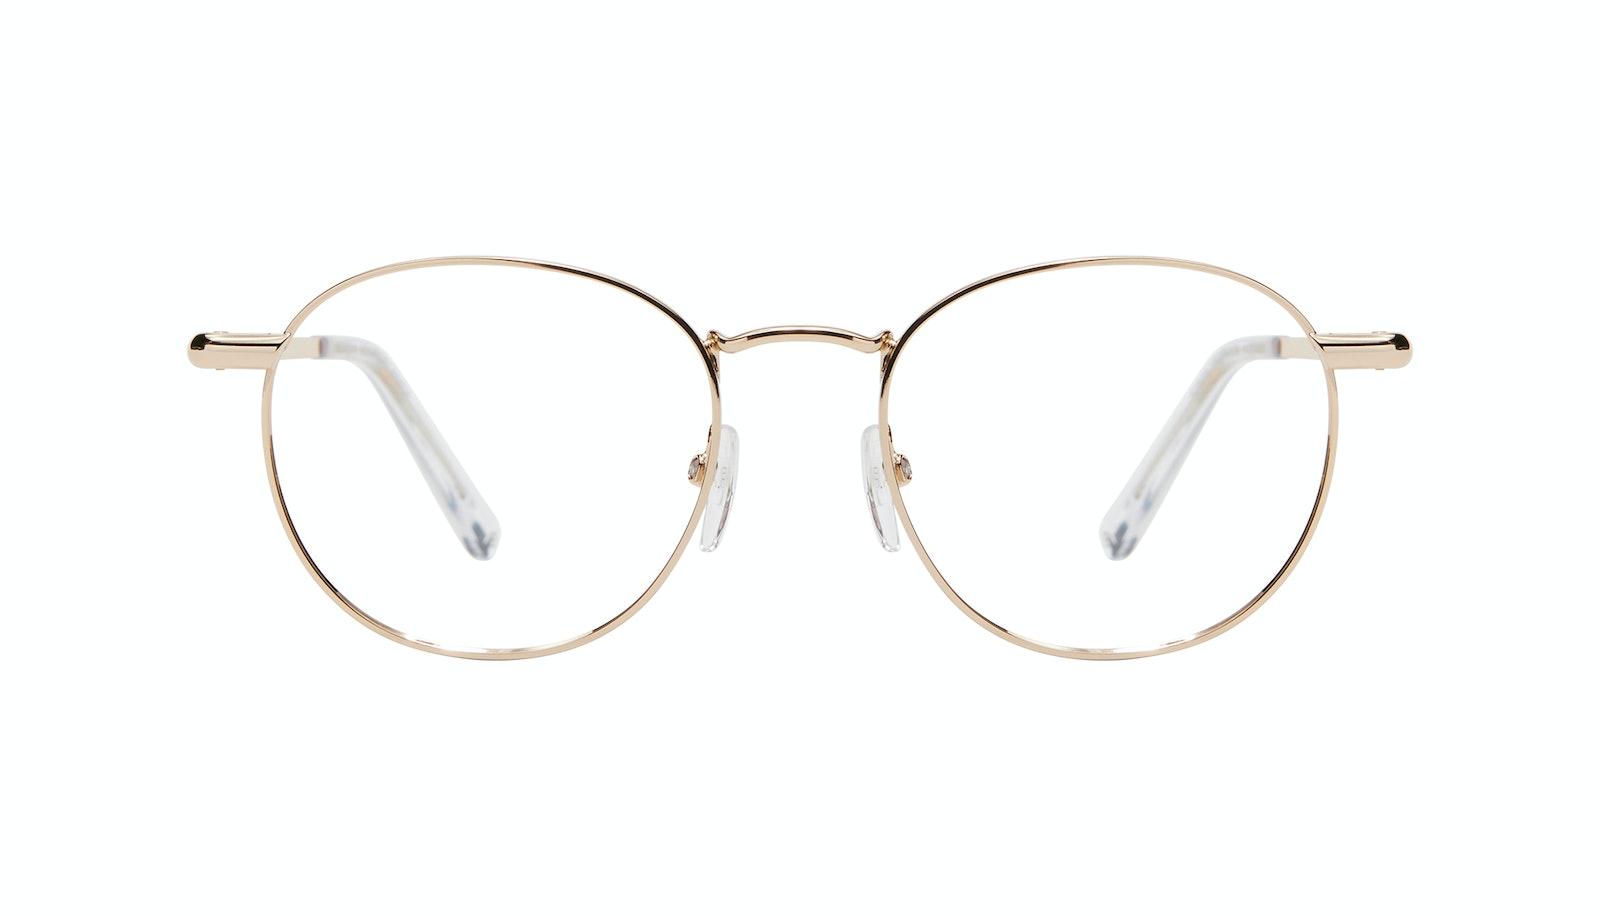 Affordable Fashion Glasses Round Eyeglasses Men Women Divine M Gold